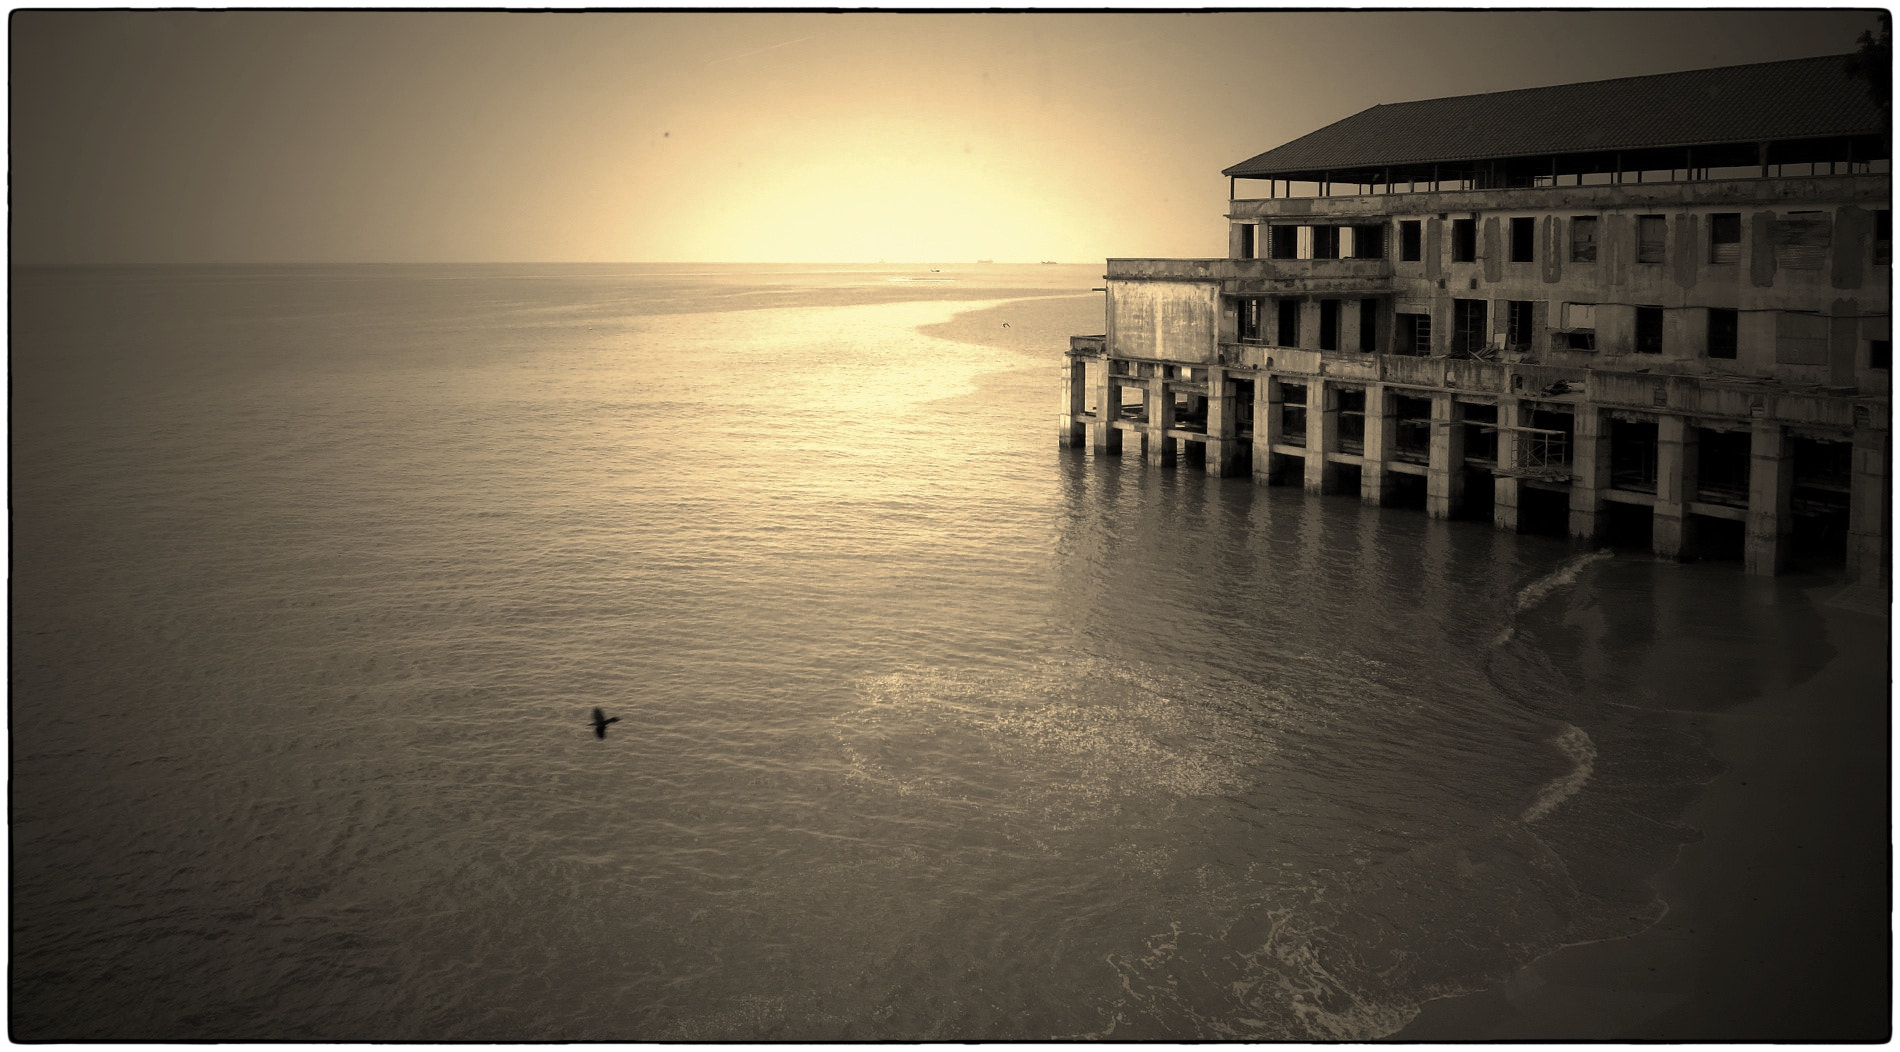 Photograph Horizonte by Raul Barrios on 500px